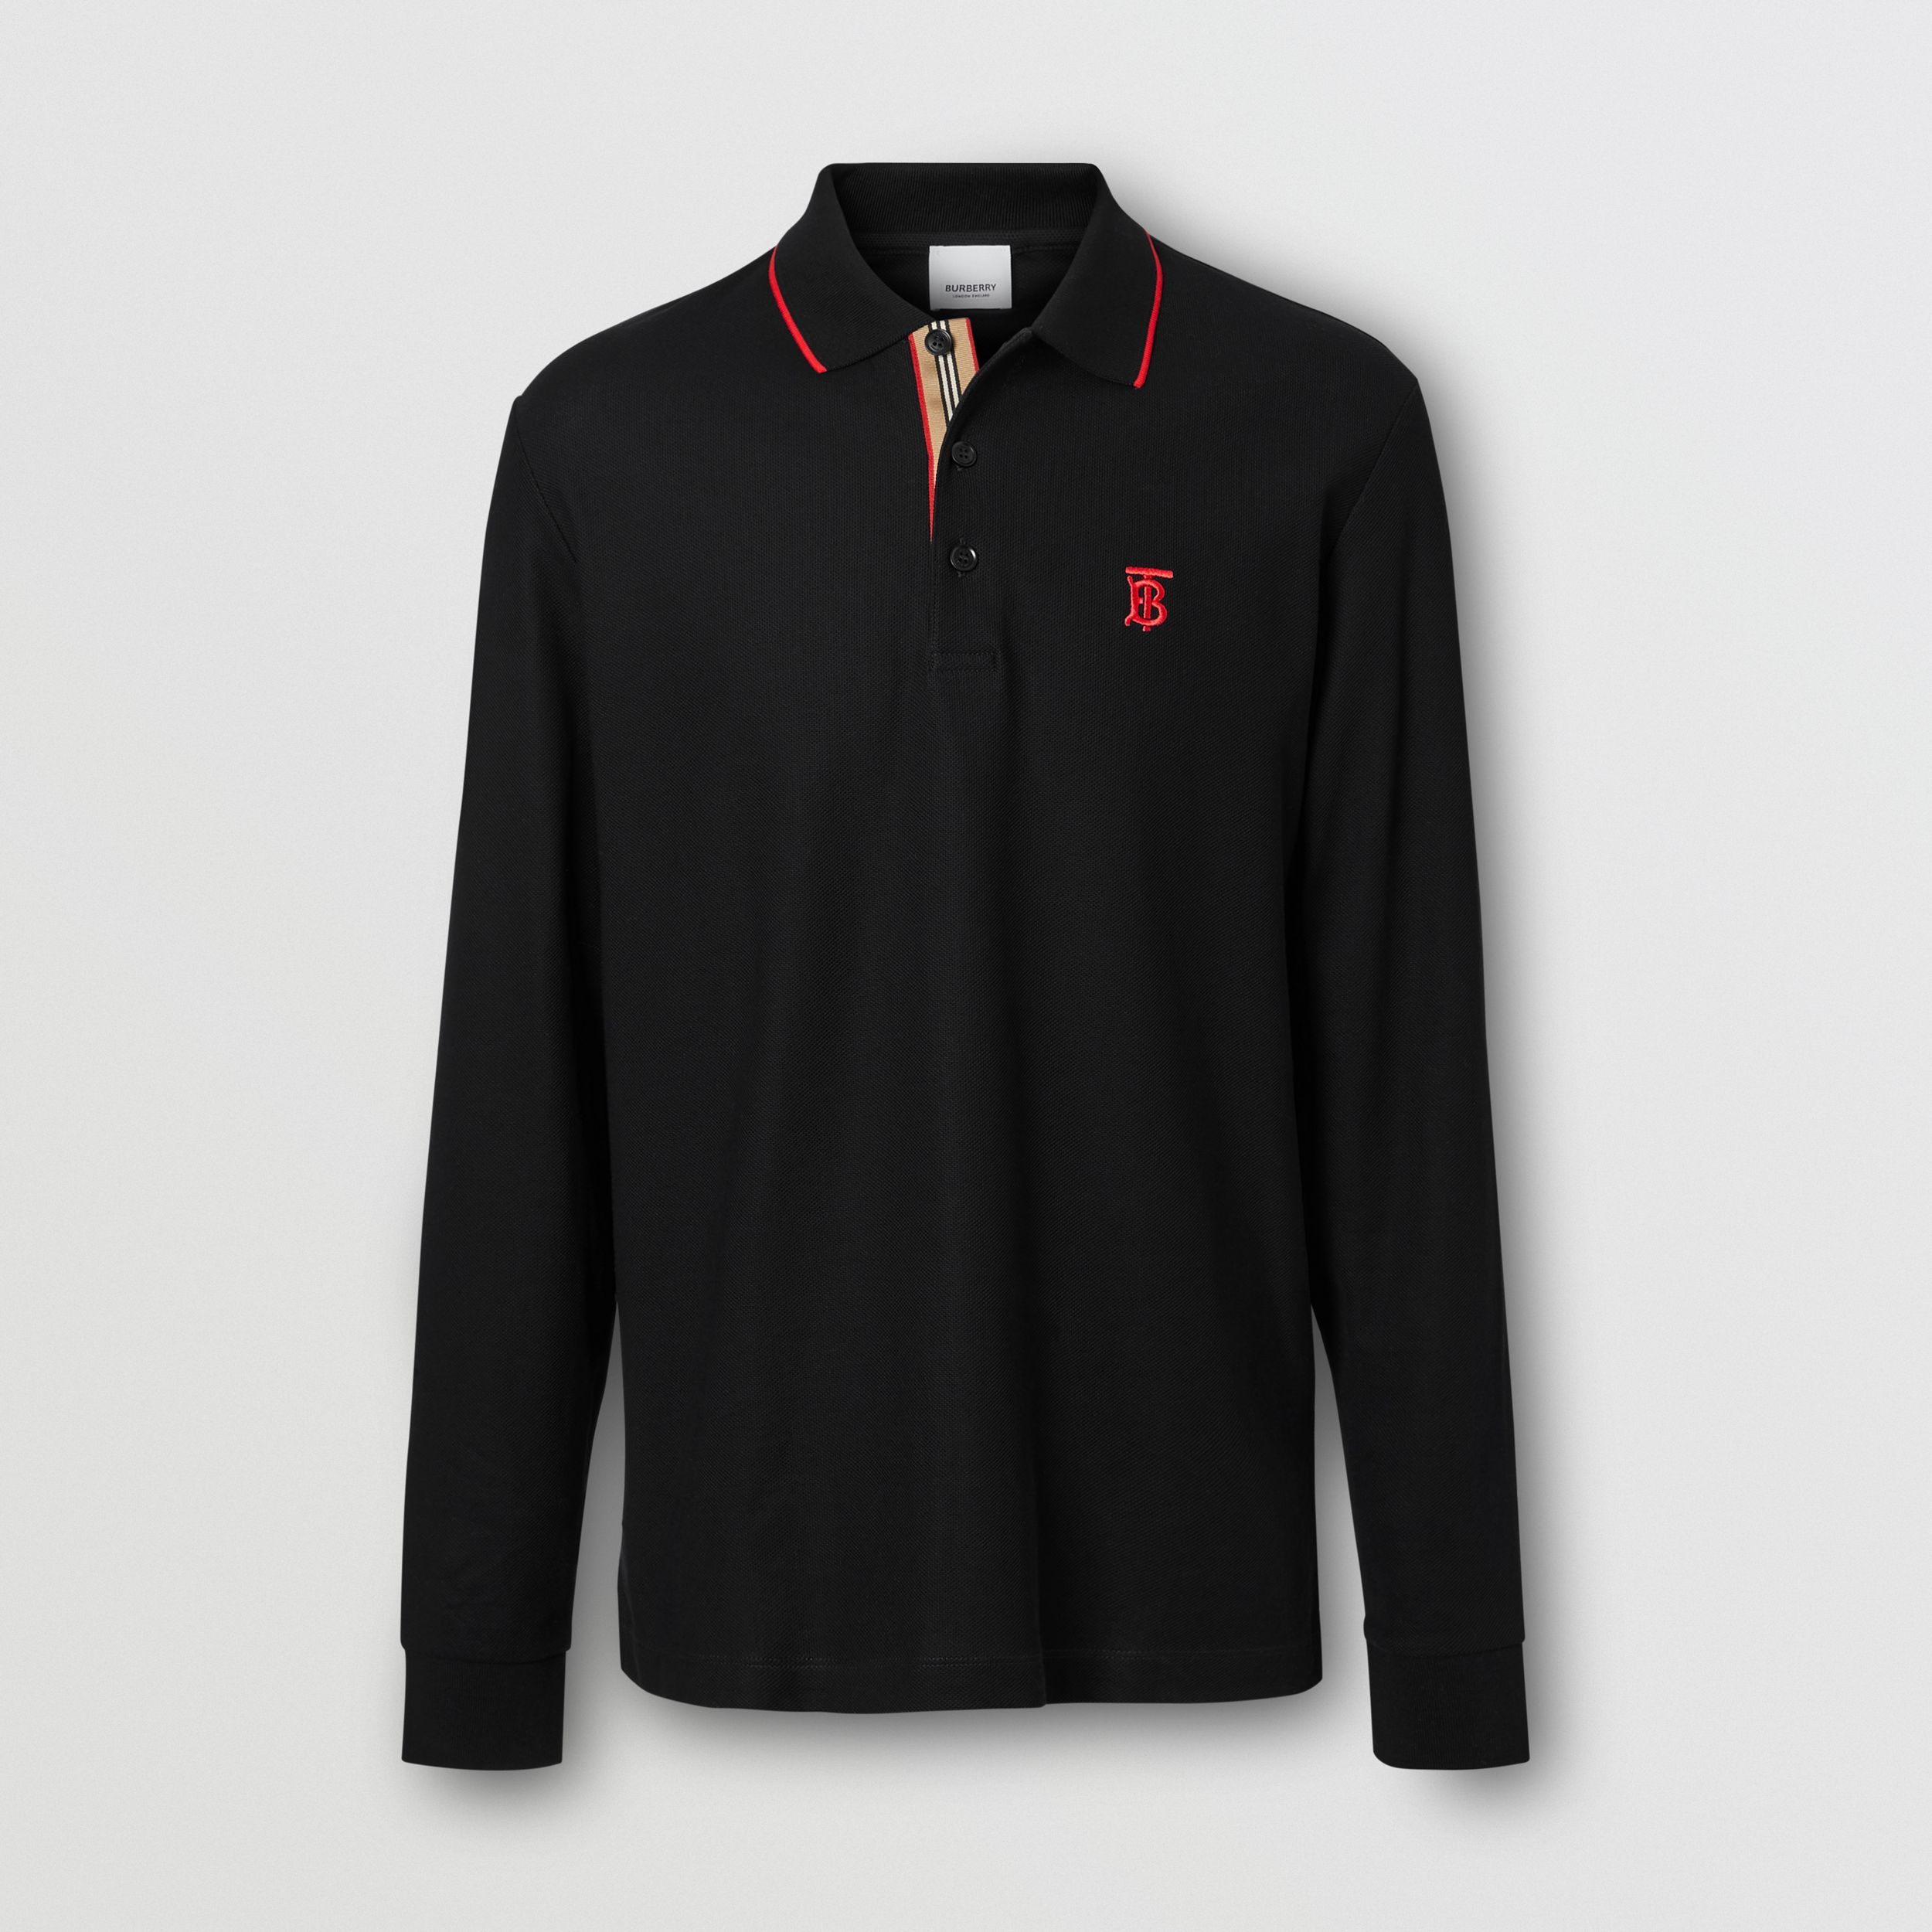 Long-sleeve Monogram Motif Cotton Piqué Polo Shirt in Black - Men | Burberry Hong Kong S.A.R. - 4